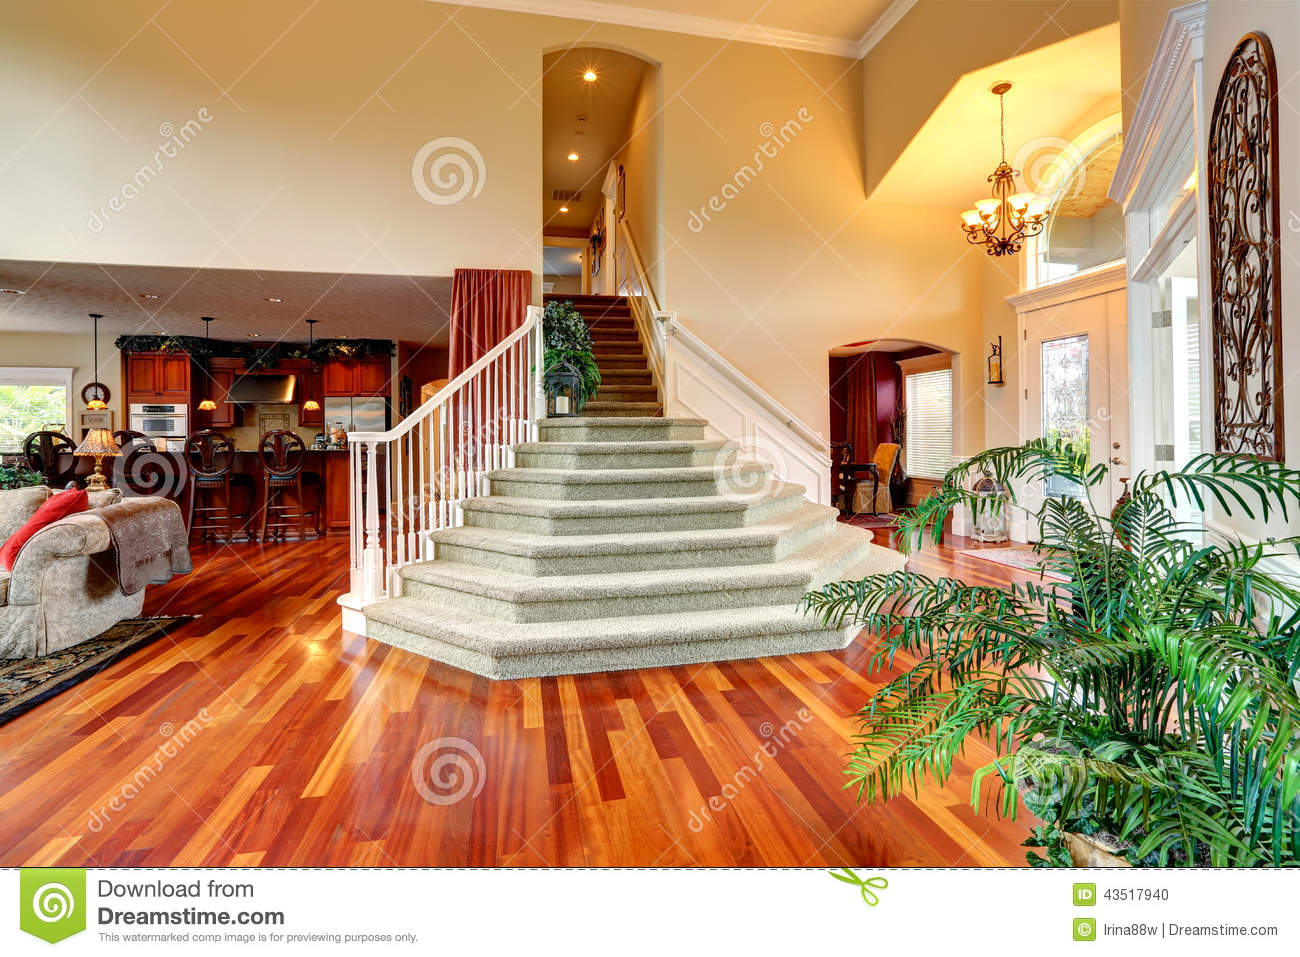 Luxury House Interior Foyer With Beautiful Staircase